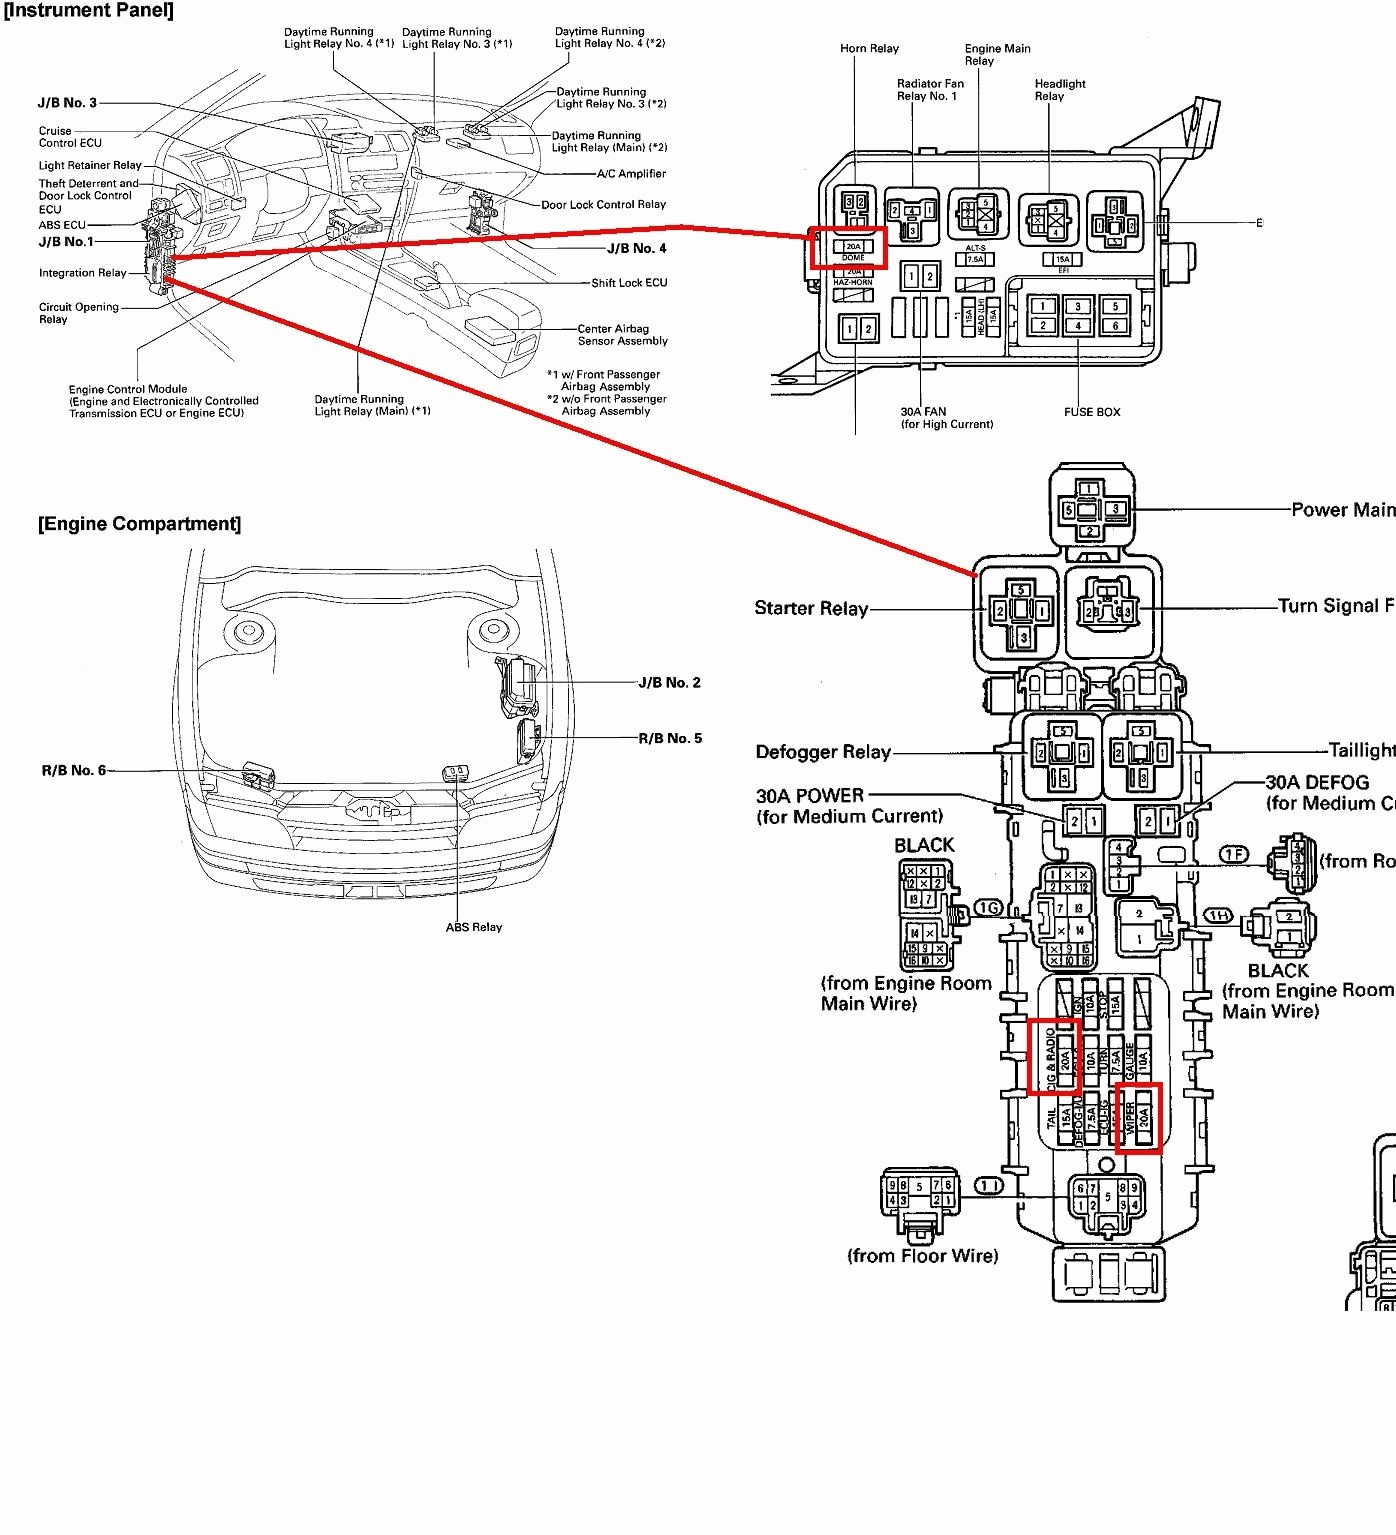 hight resolution of toyota matrix fuse box diagram wiring diagram centretoyota matrix fuse box diagram